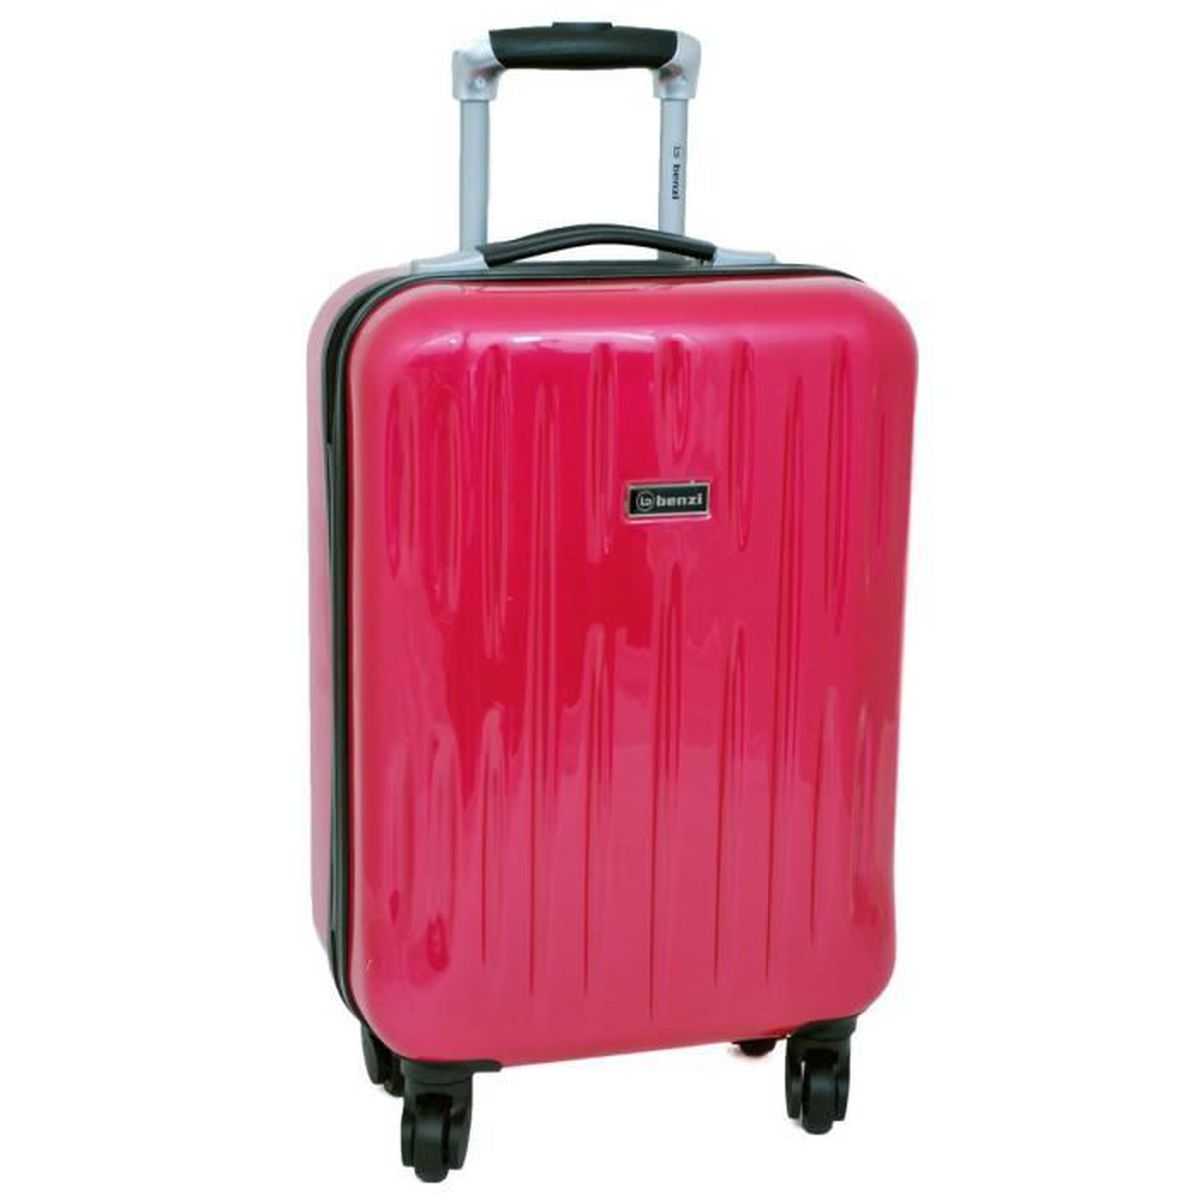 valise rigide roulettes cabine 4 roues en abs rose fushia rose achat vente valise bagage. Black Bedroom Furniture Sets. Home Design Ideas